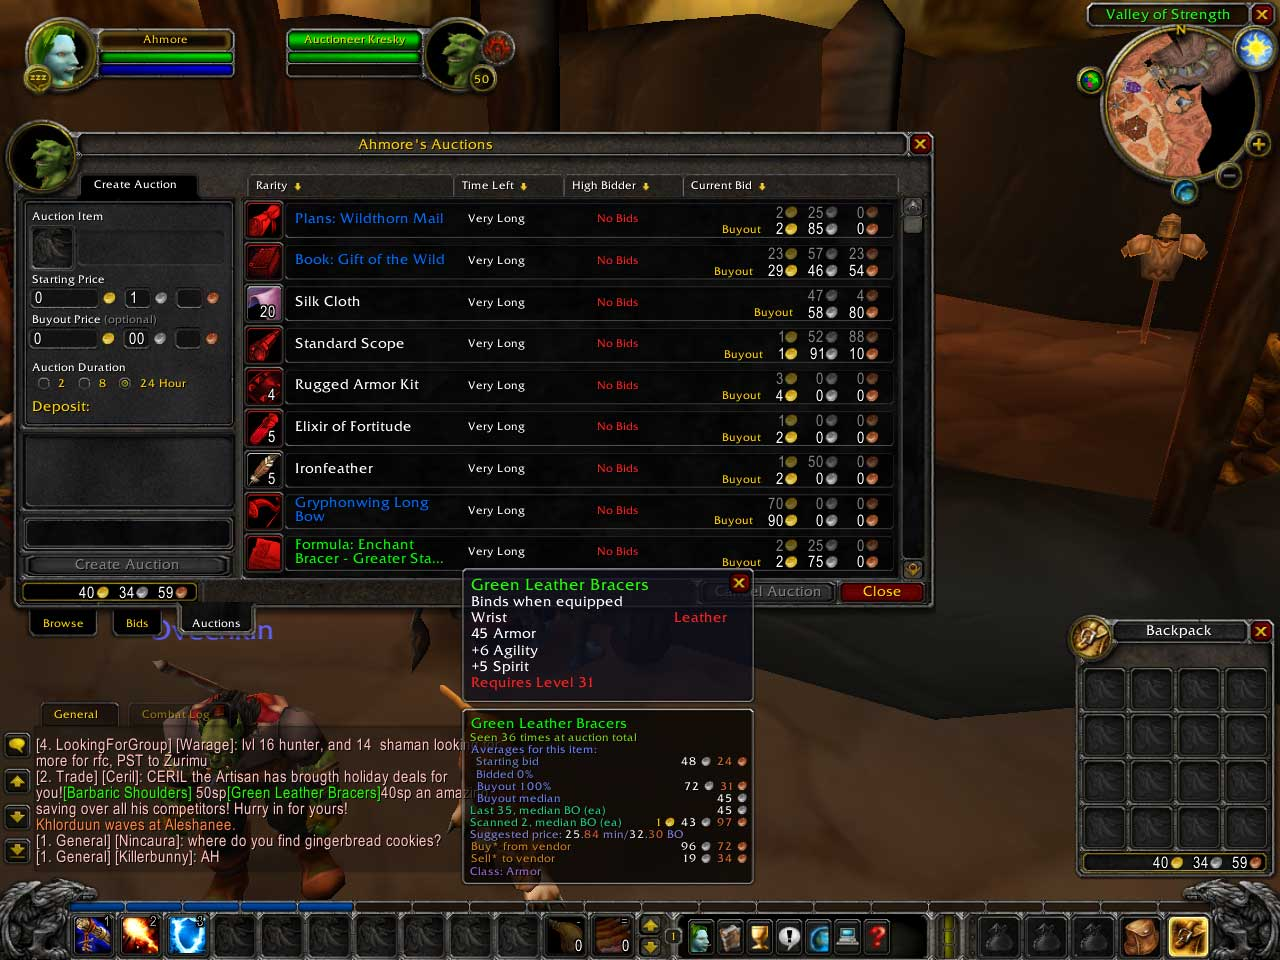 The World of Warcraft auction house